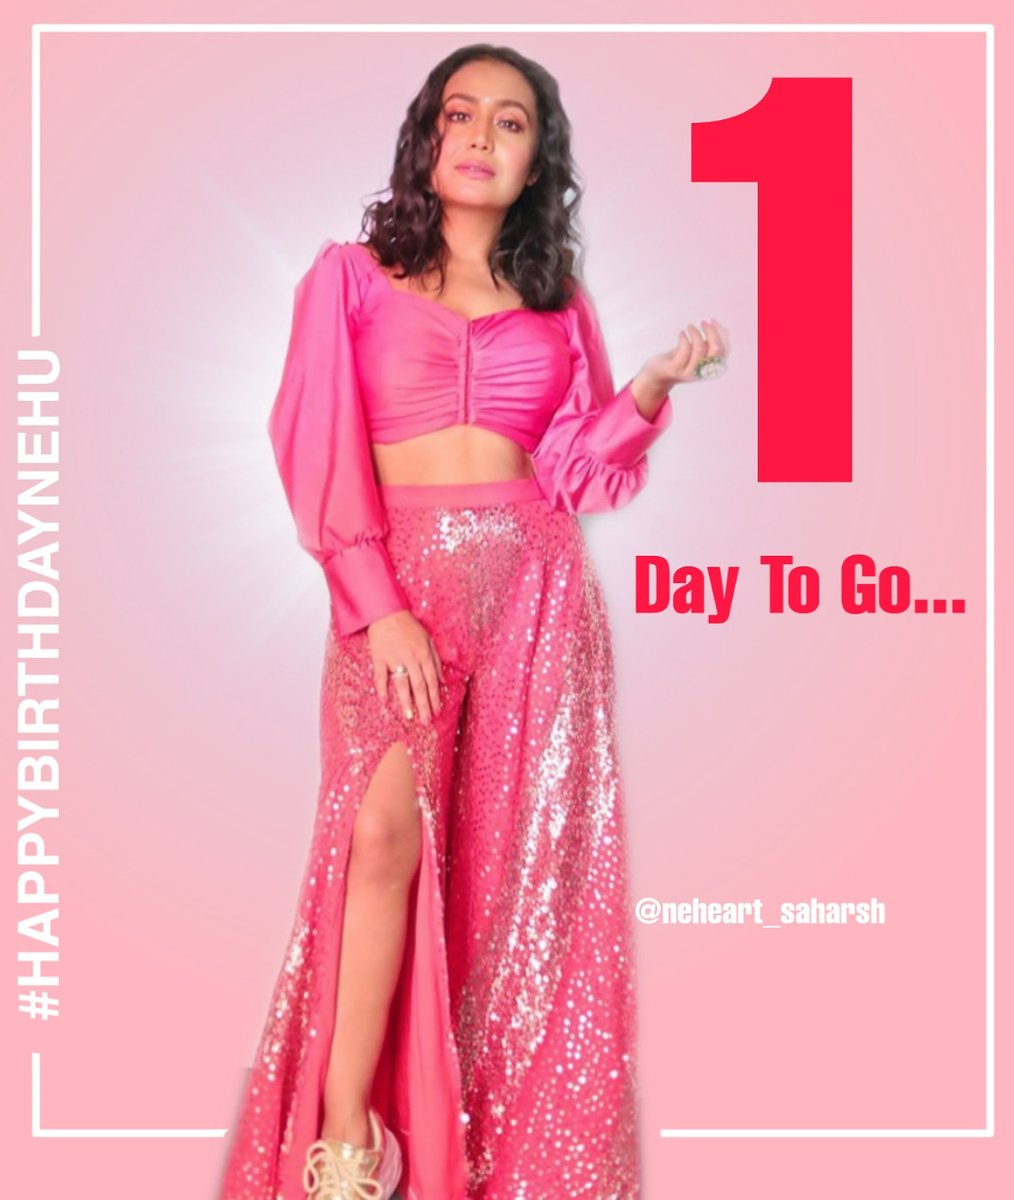 The Excitement has Crossed All The Levels cause only 1 Days Left For  Your Birthday . Cant Wait #happybirthdaynehu @iAmNehaKakkar #NehaKakkar . . . . #nehakakkarlove #nehudiaries #nehakakkarfc #nehakakkarfansclub #nehakakkarfanfollowing #nehakakkarfanforever pic.twitter.com/L240ovGUSu